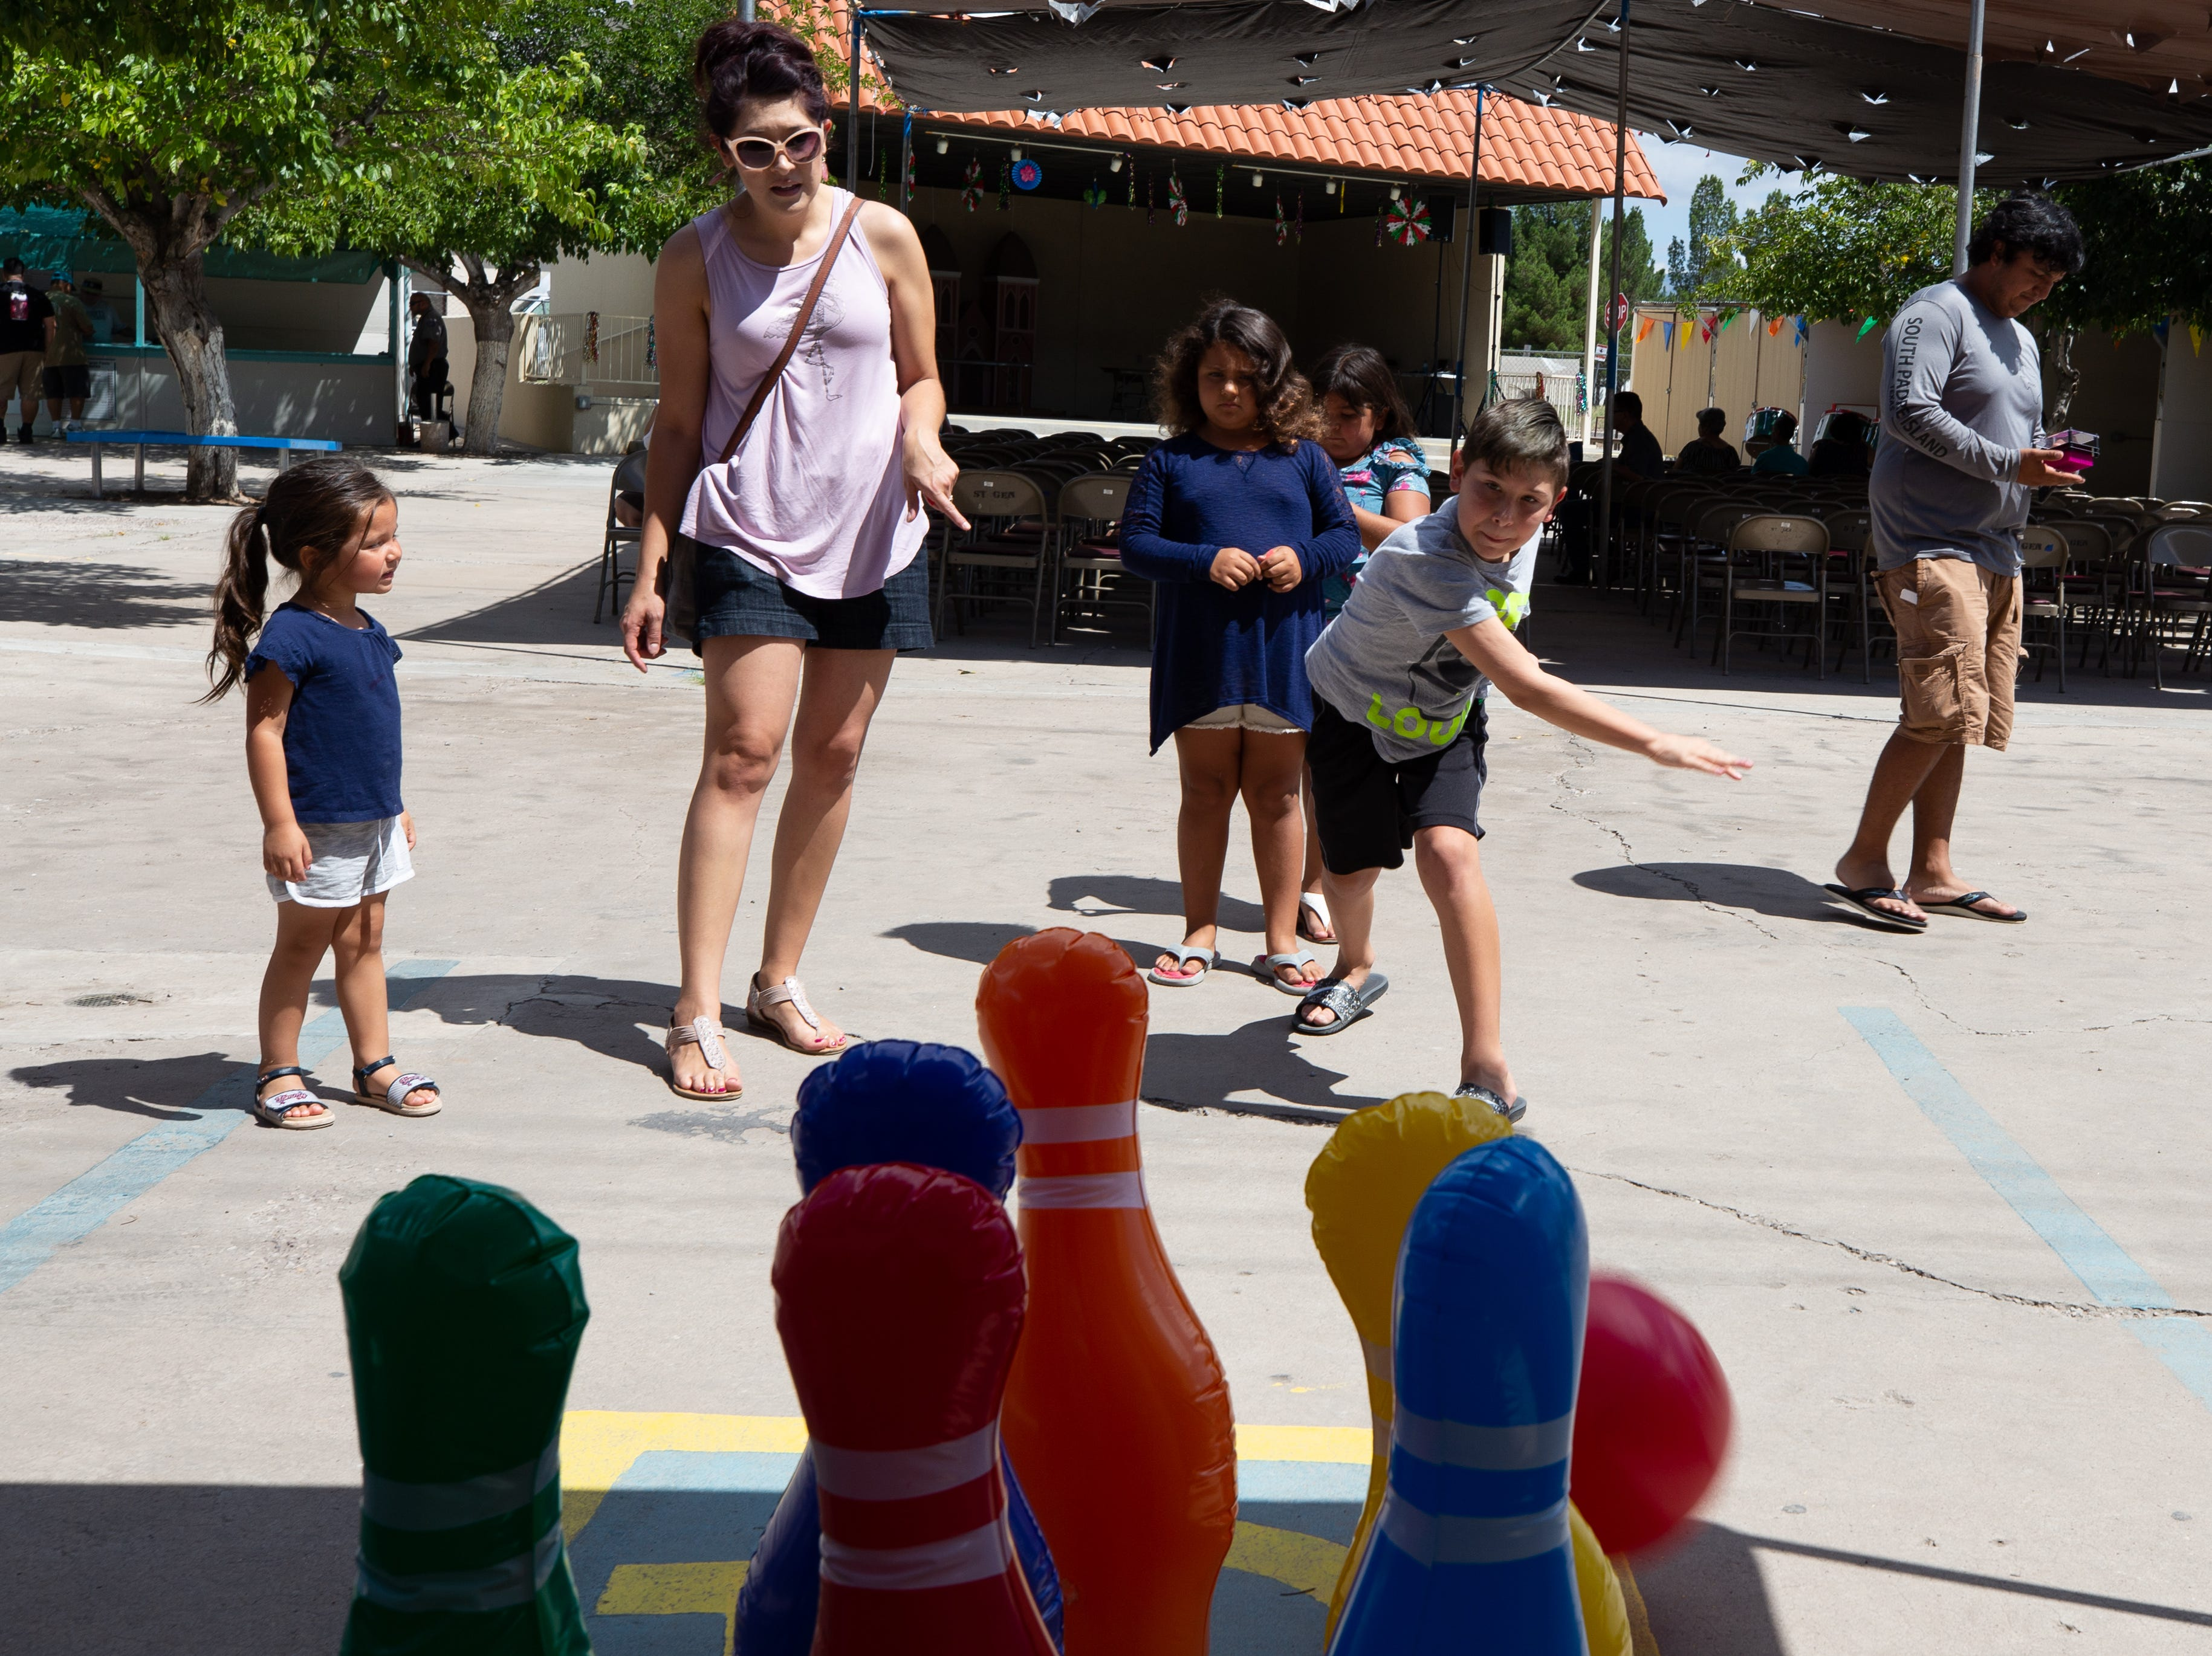 Noah Ferda, 10, flings a bowling ball at inflatable pins as his mother Karrie Espinosa and sister Mia, 3, look on at the St. Genevieve Fiesta on Saturday, Sept. 8, 2018.